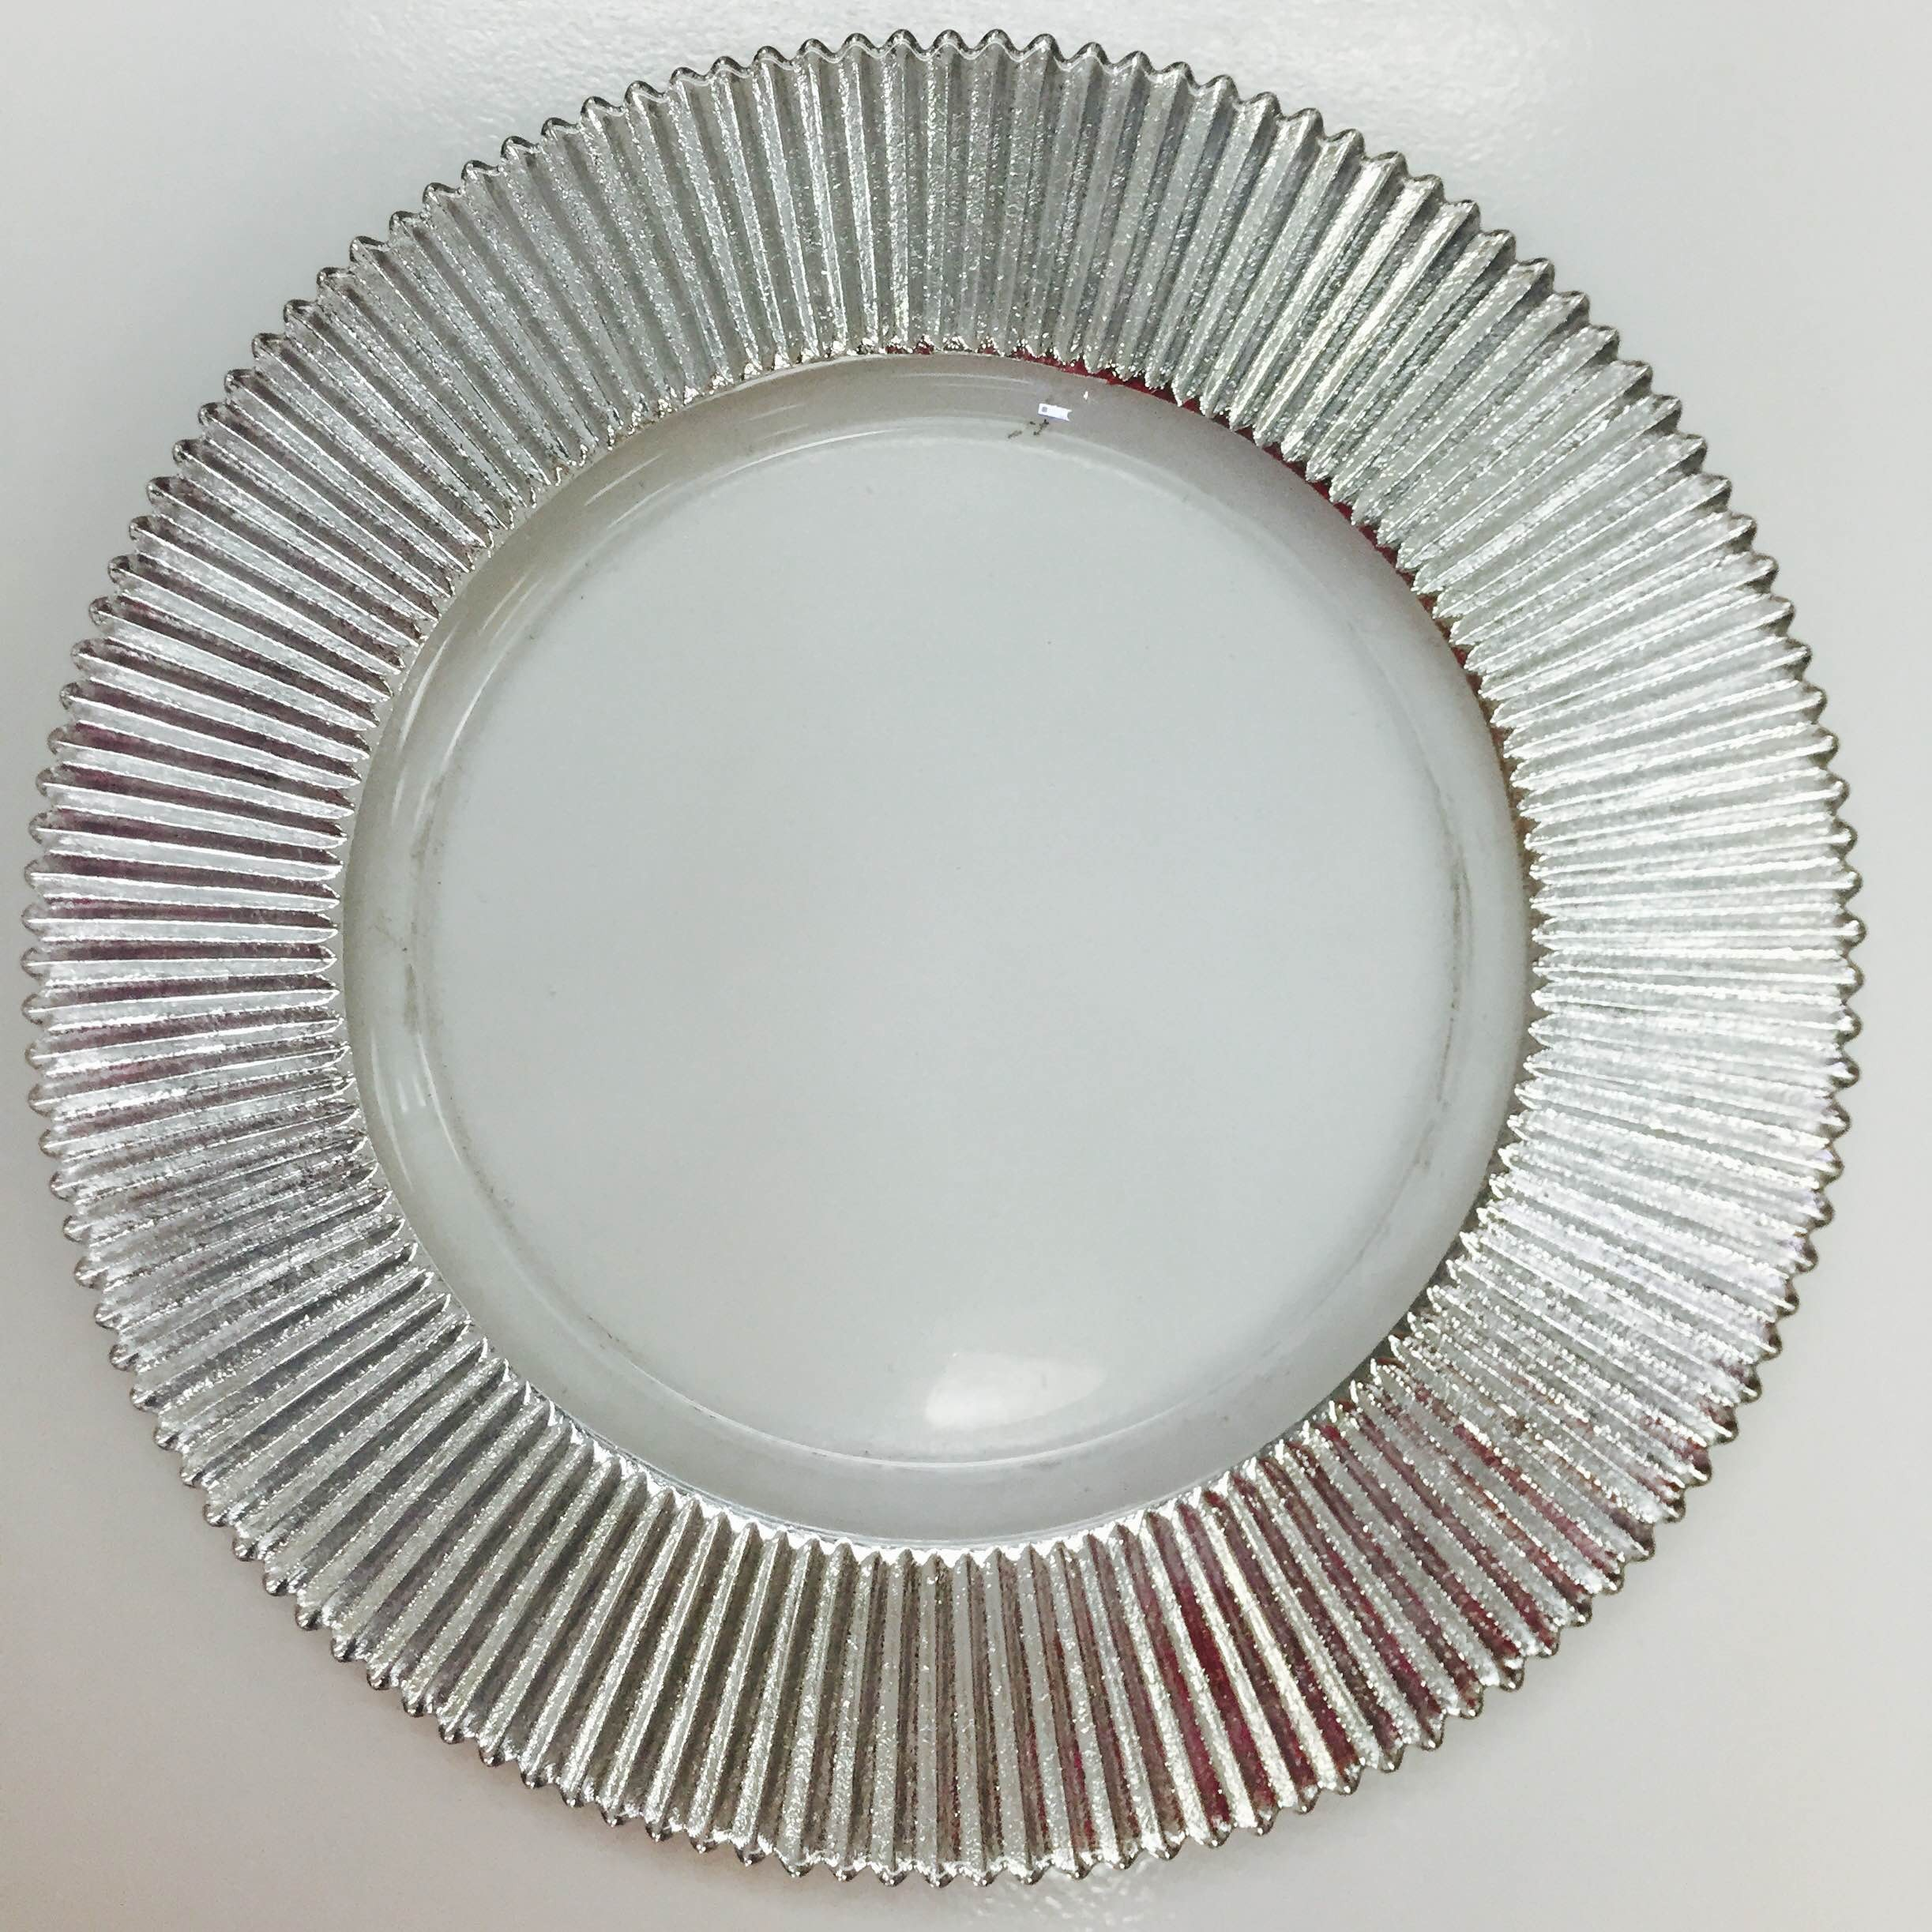 New Charger Plate C